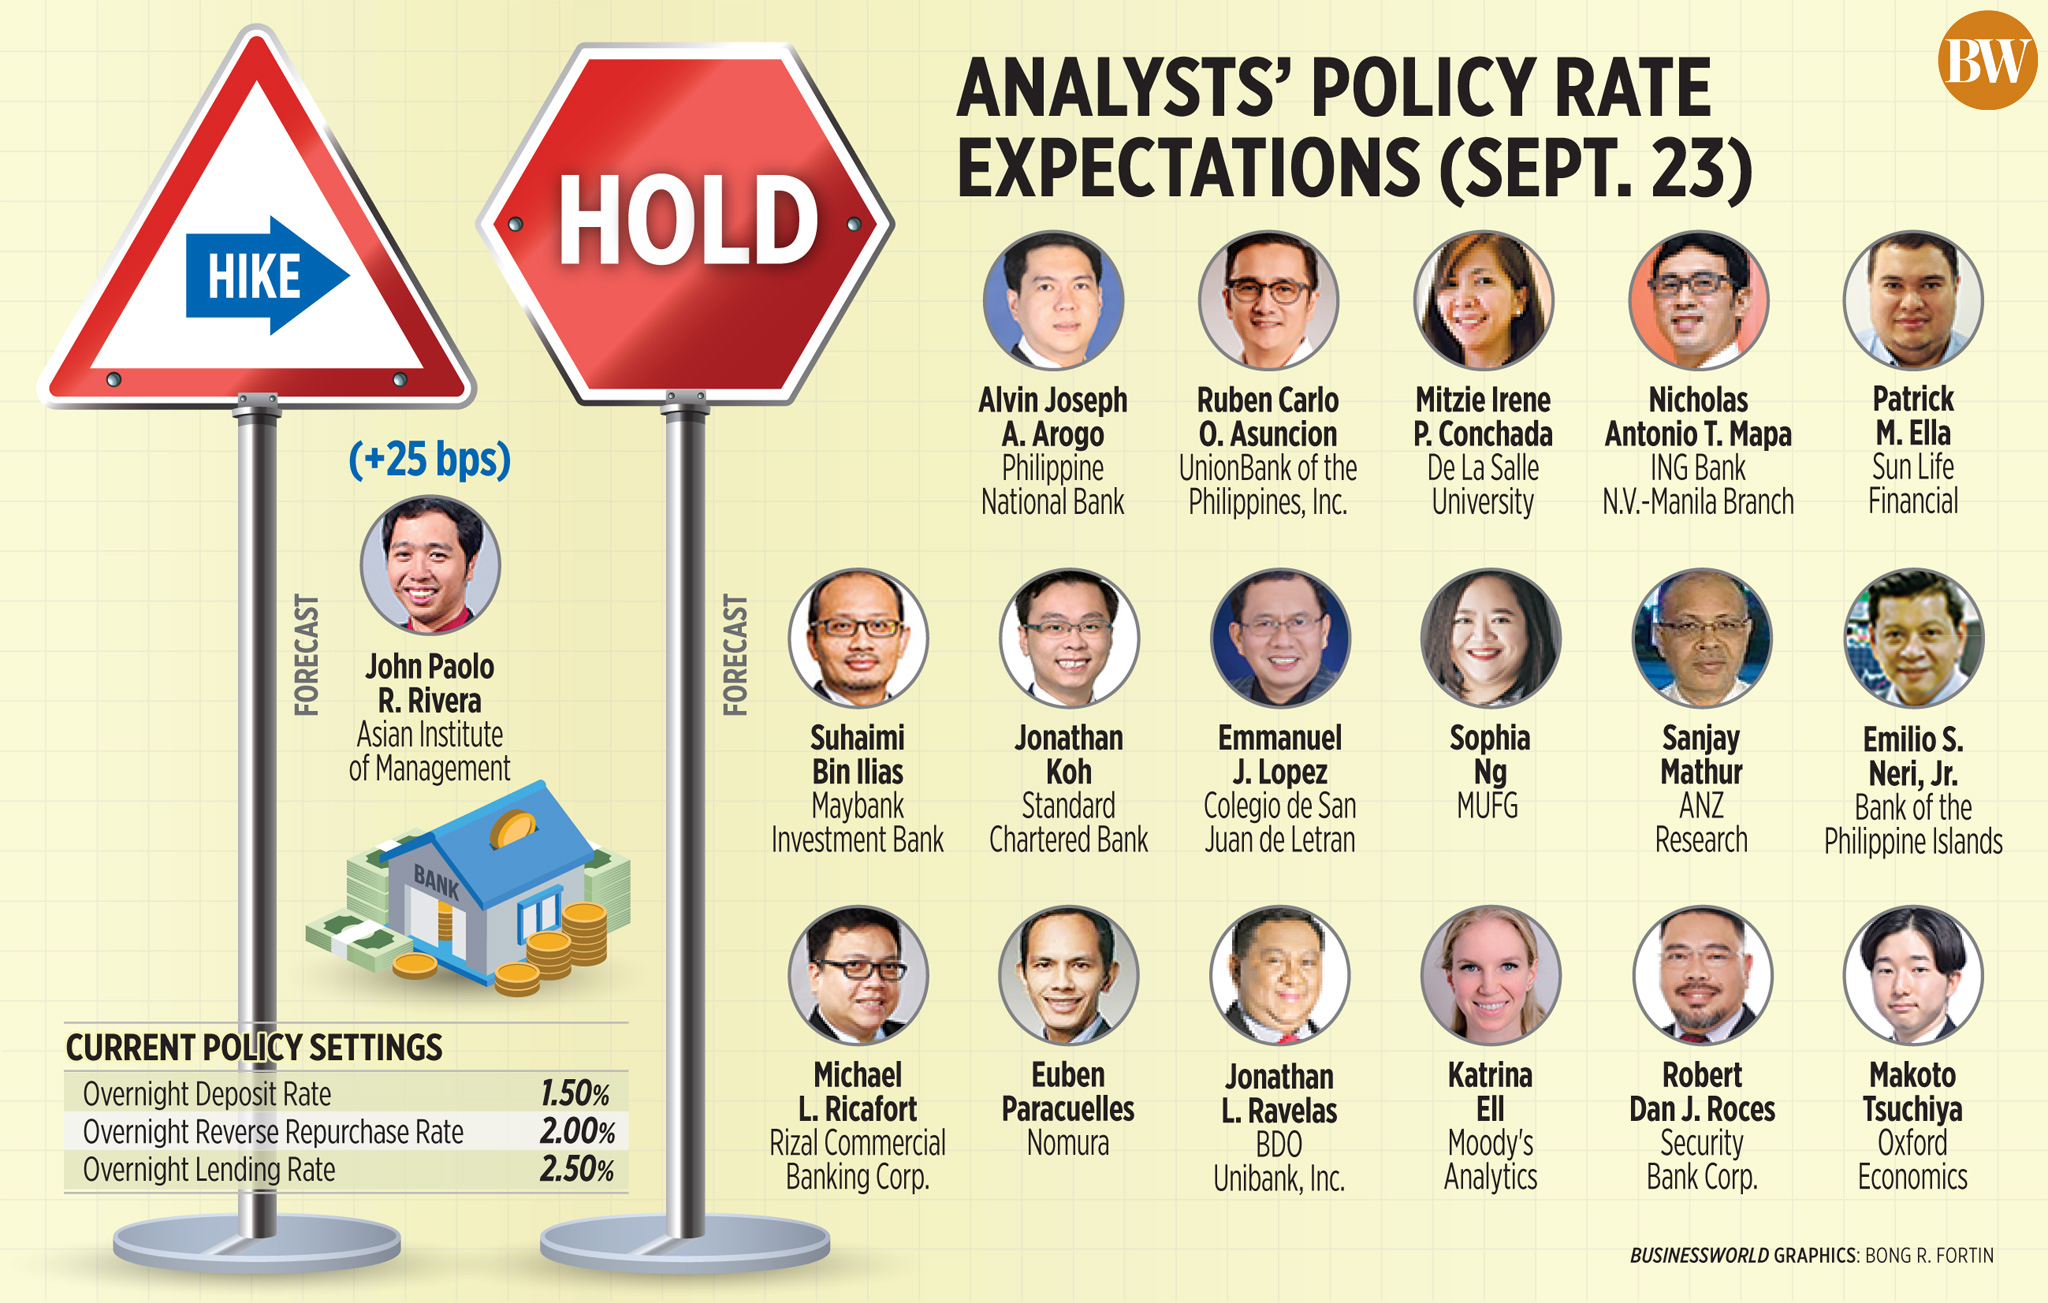 Analysts' policy rate expectations (Sept. 23)